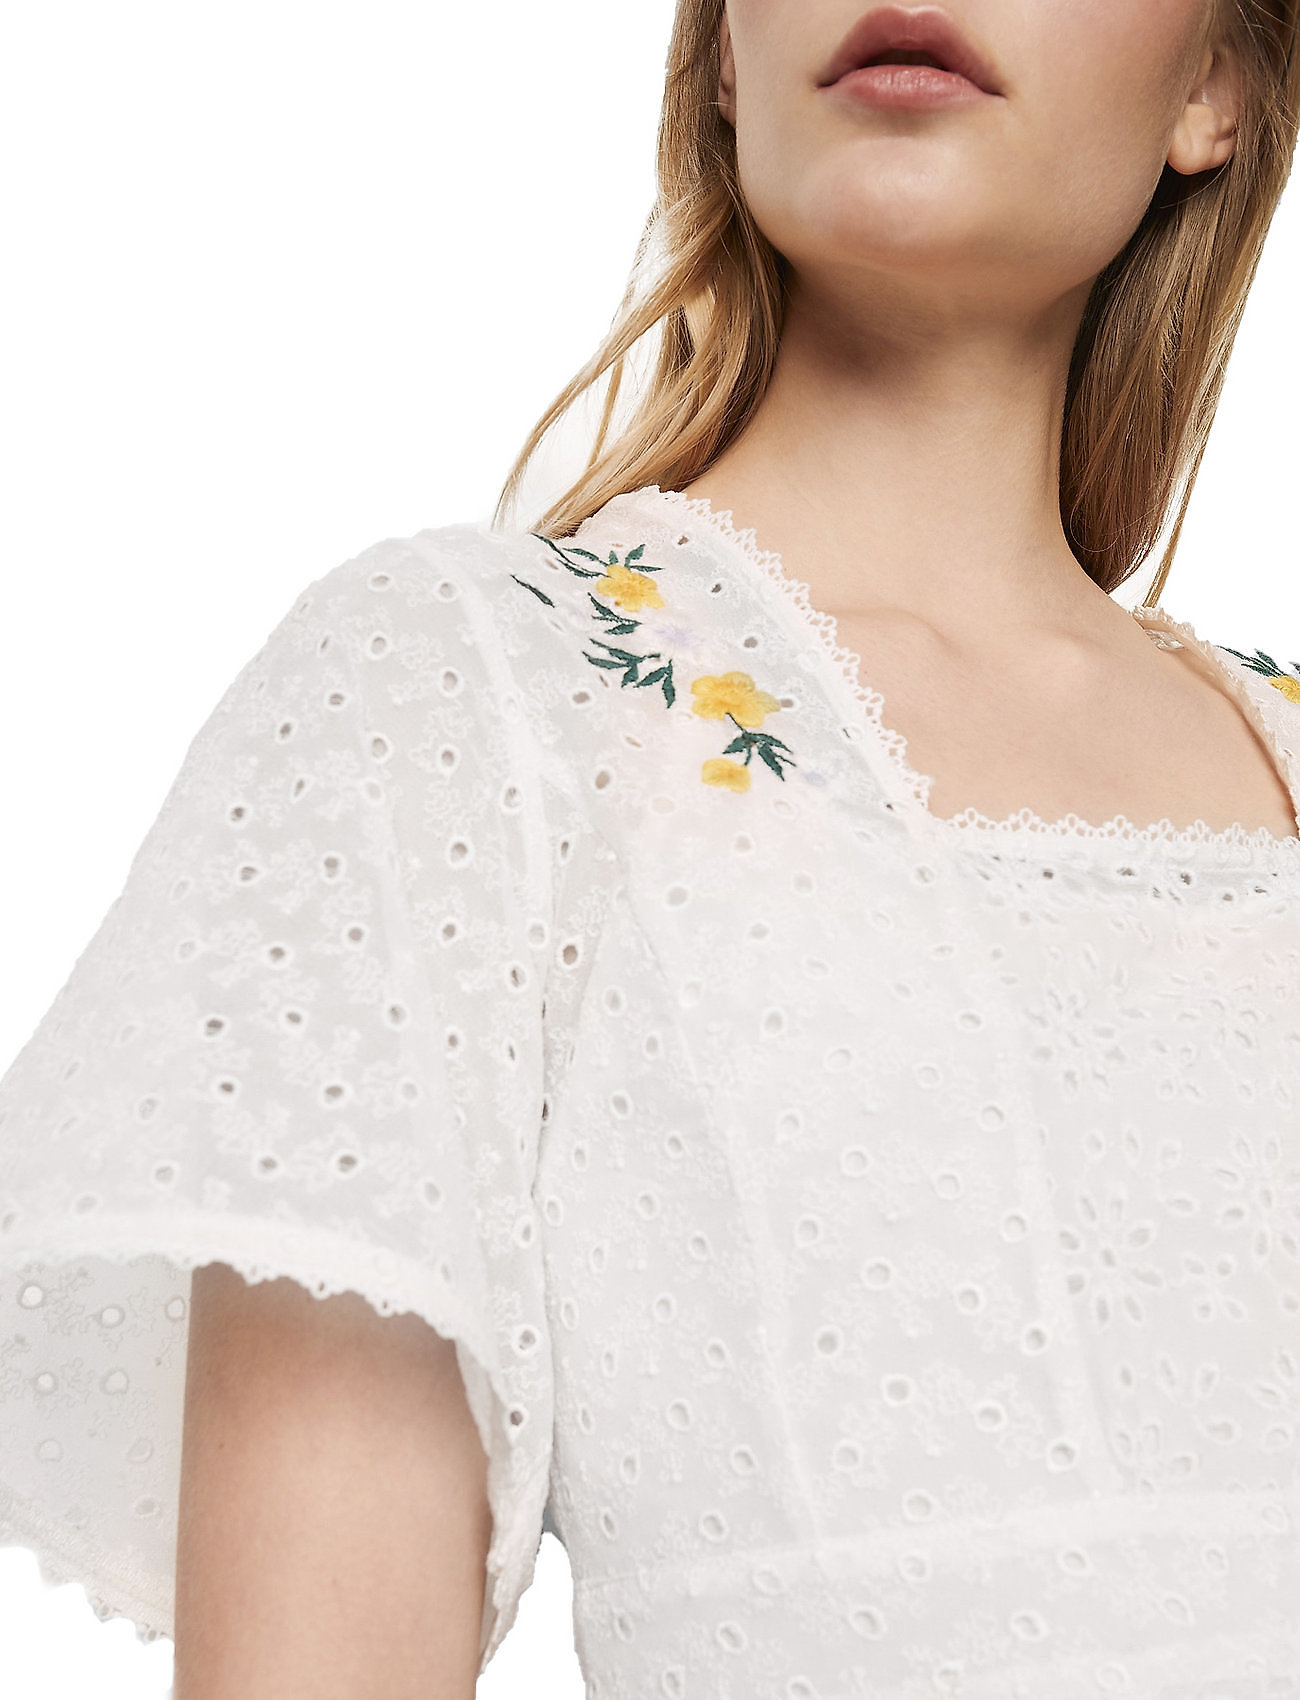 French Connection Pf Eka Embroidered Ggt Top - Blusar & Skjortor Summer White